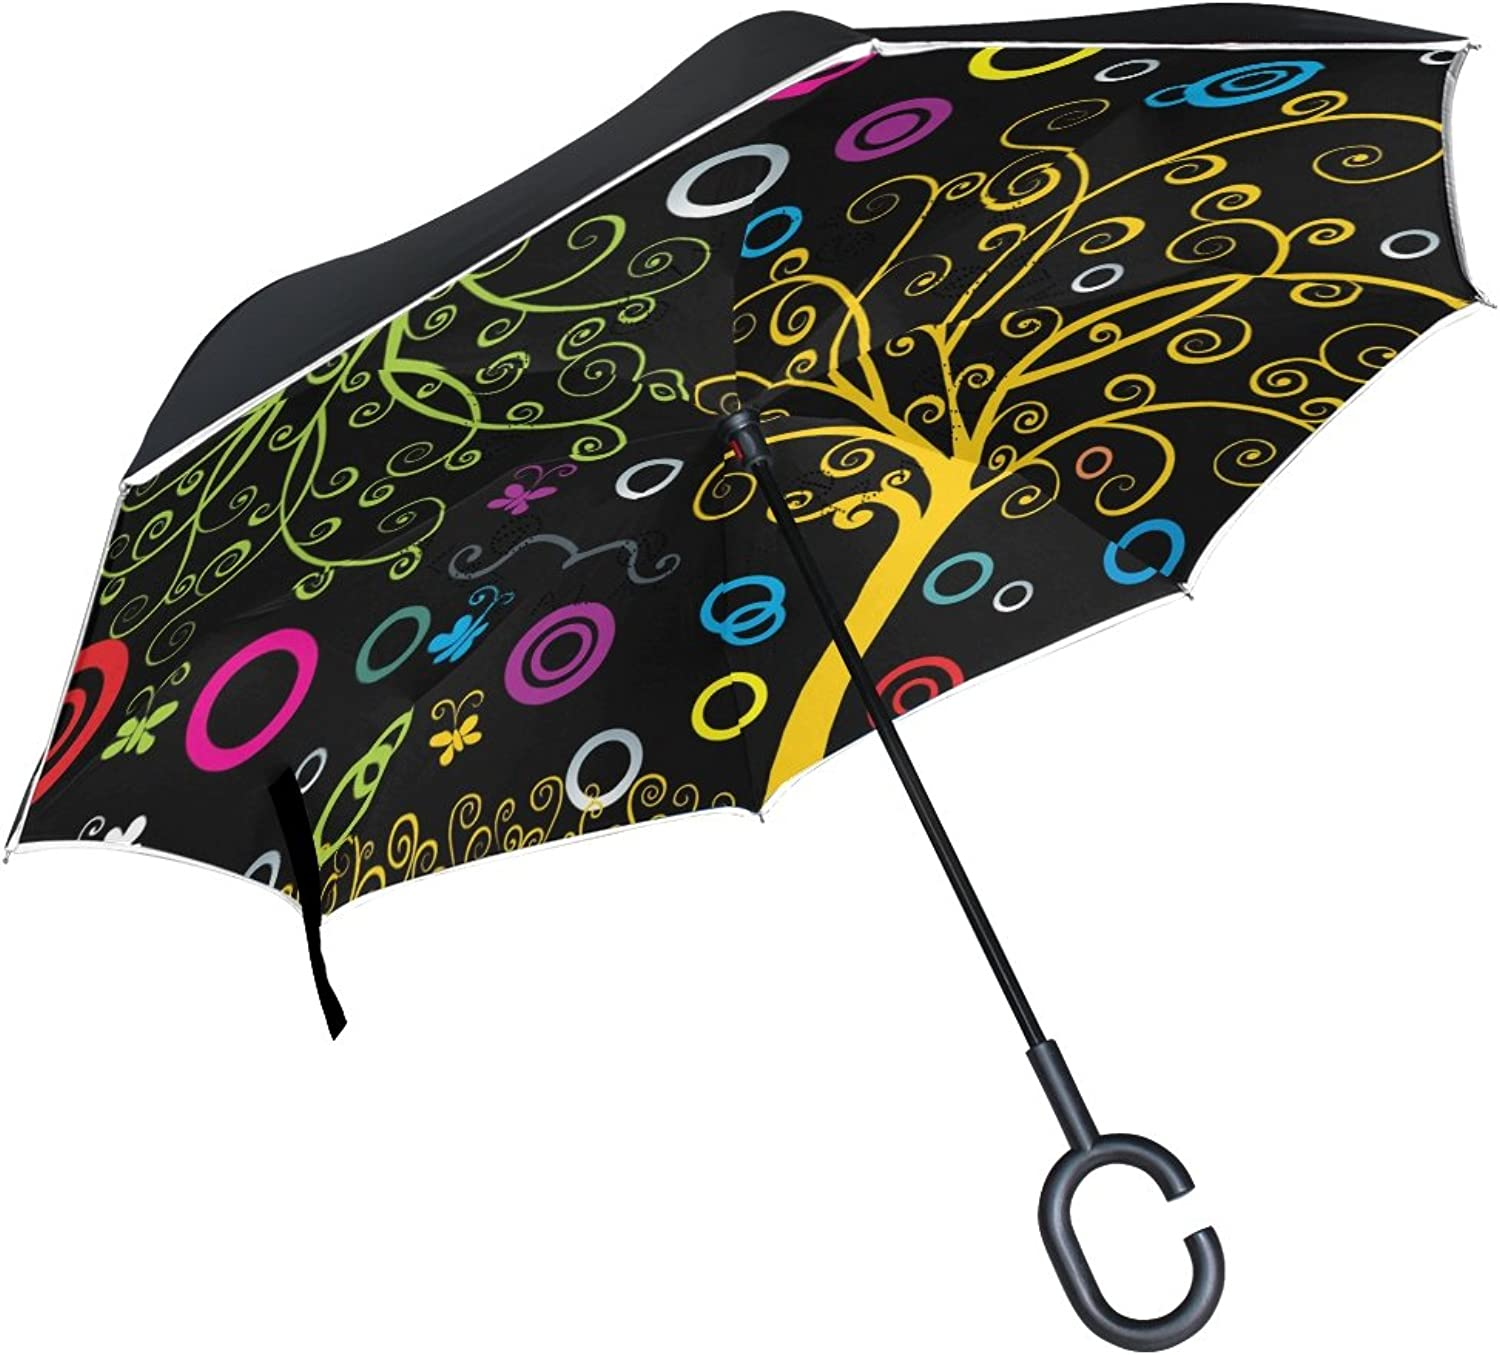 ALAZA Tree of Life Ingreened Umbrella Double Layer Windproof Reverse Folding Umbrella for Car with C-Shape Handle